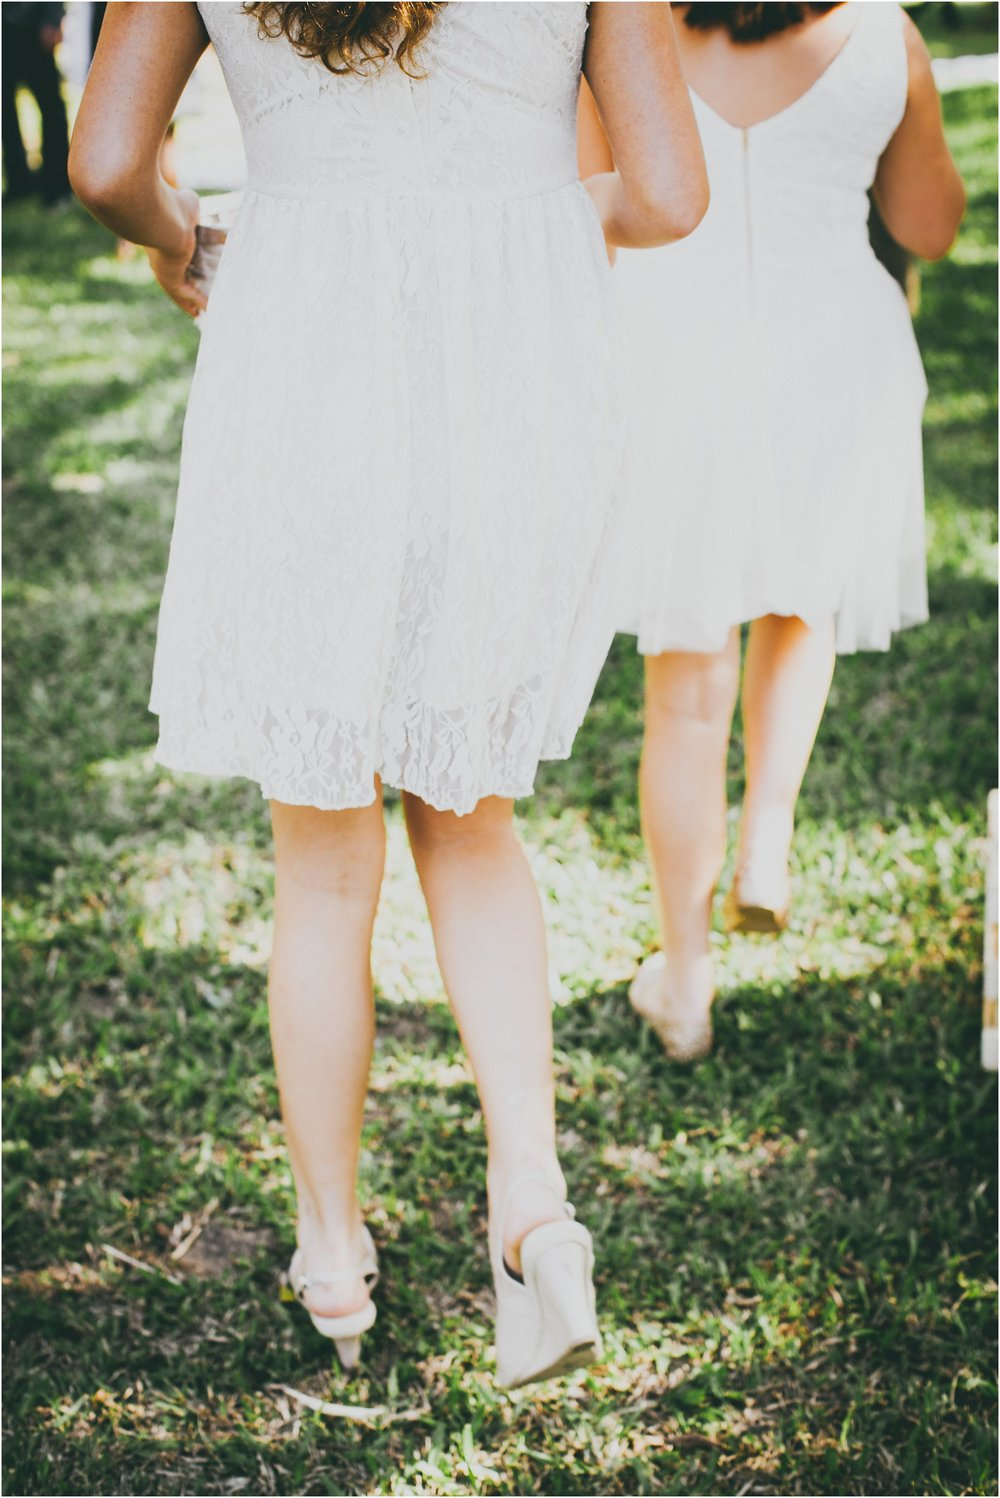 Ceremony_FionaClairPhotography-28.jpg